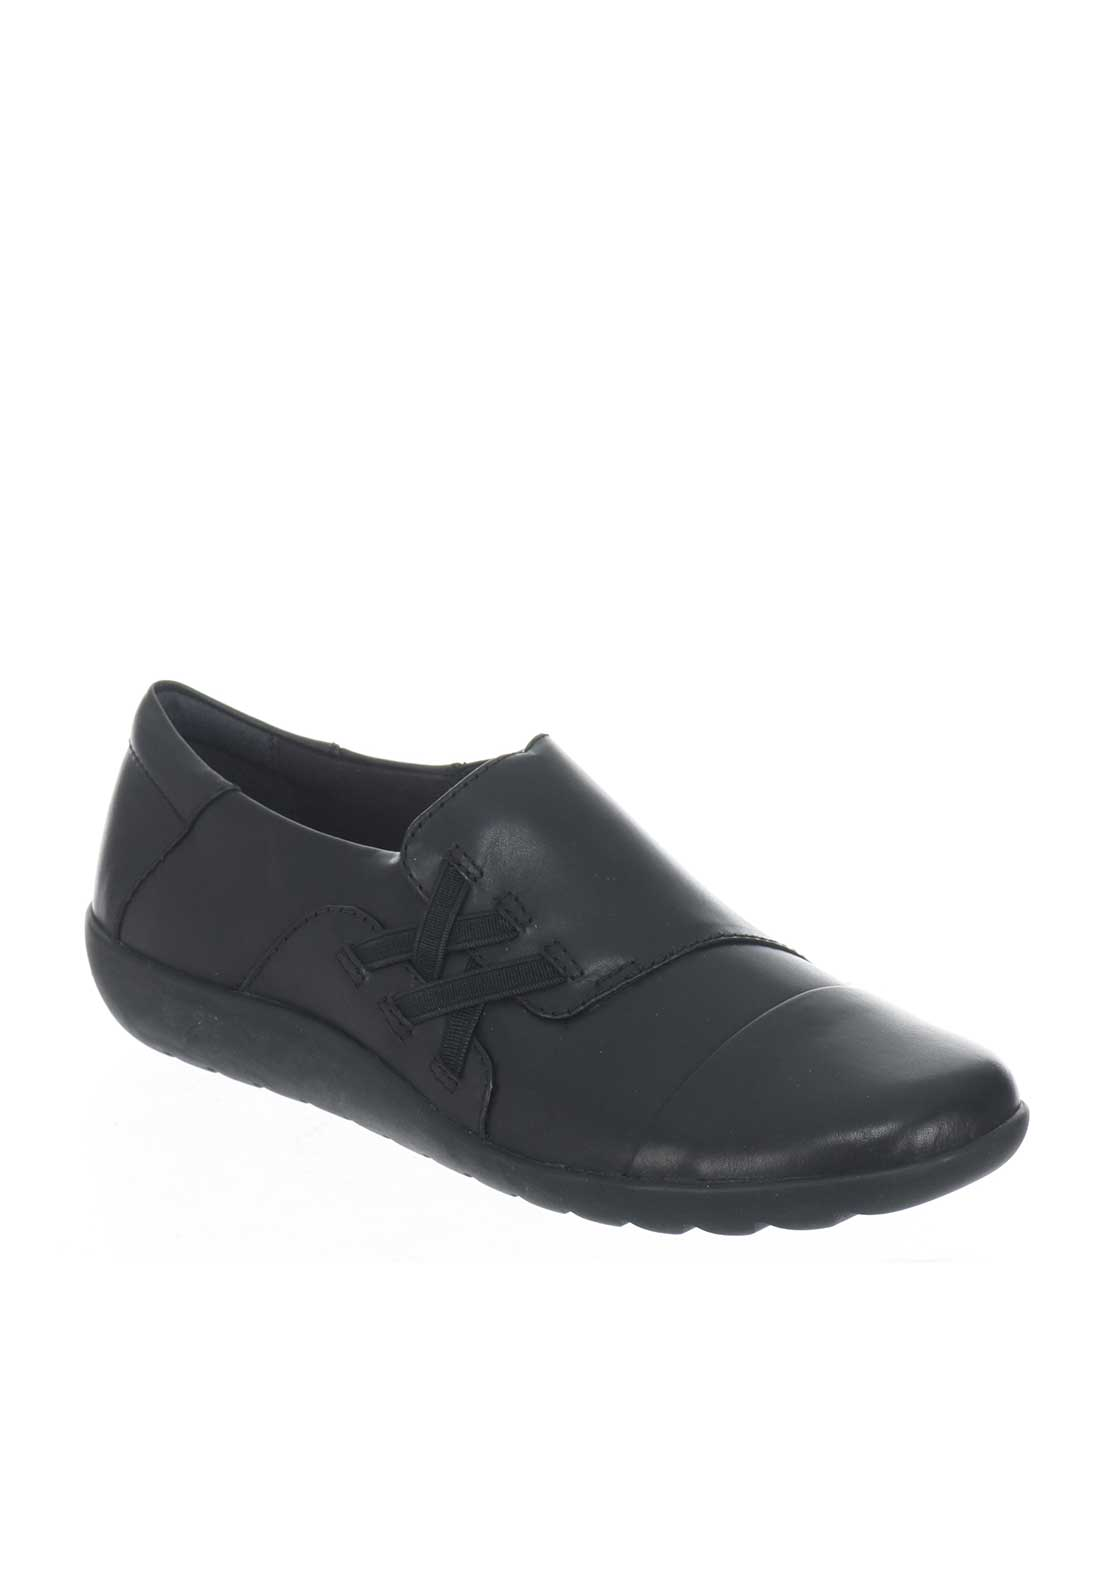 Clarks Womens Medora Sandy Leather Shoes, Black